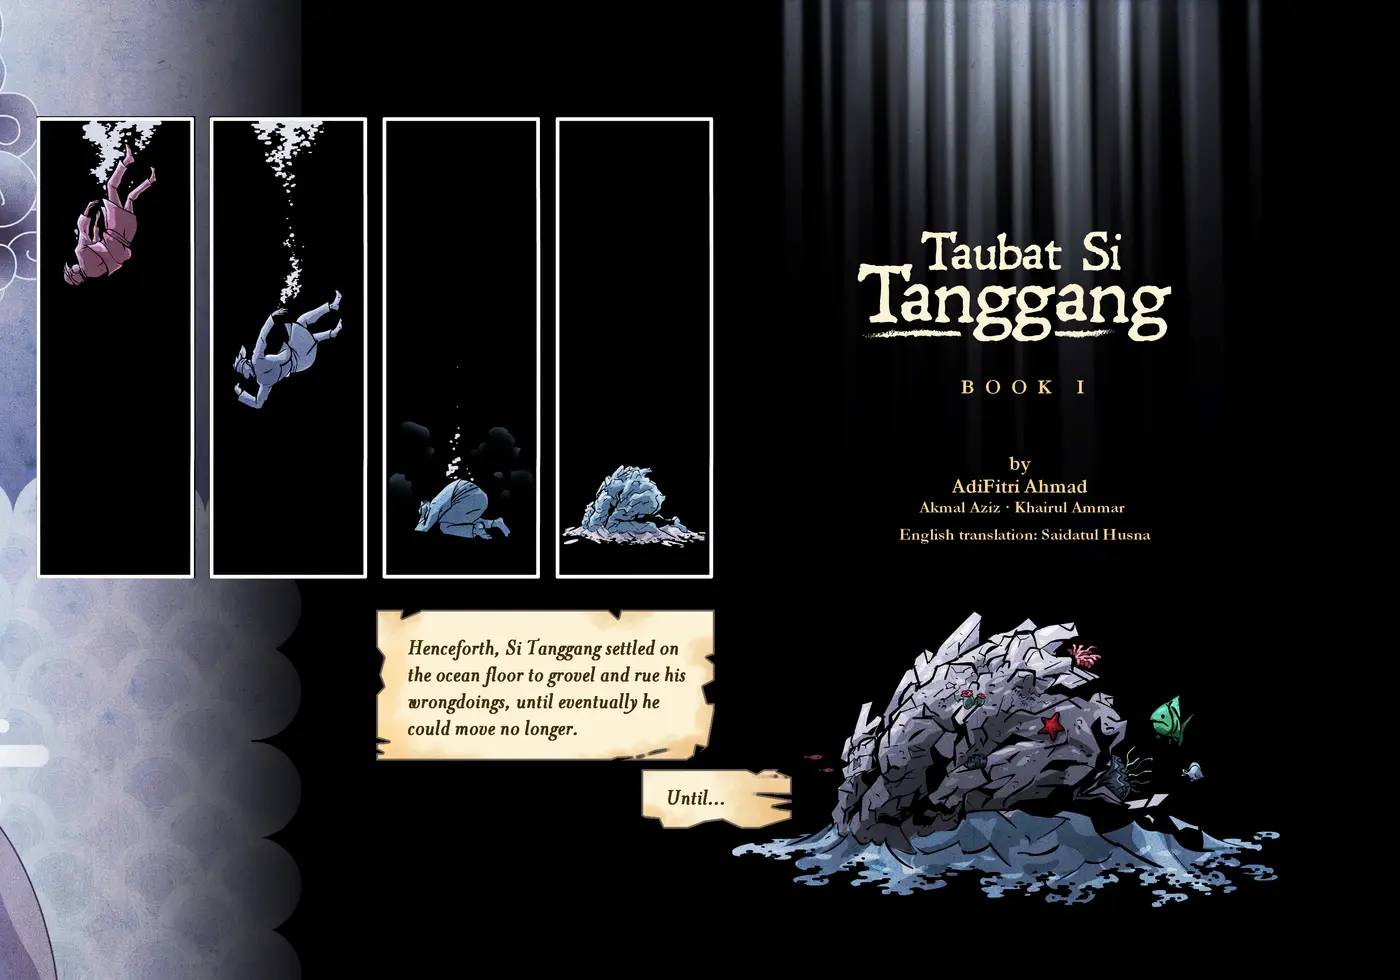 The Redemption of Tanggang